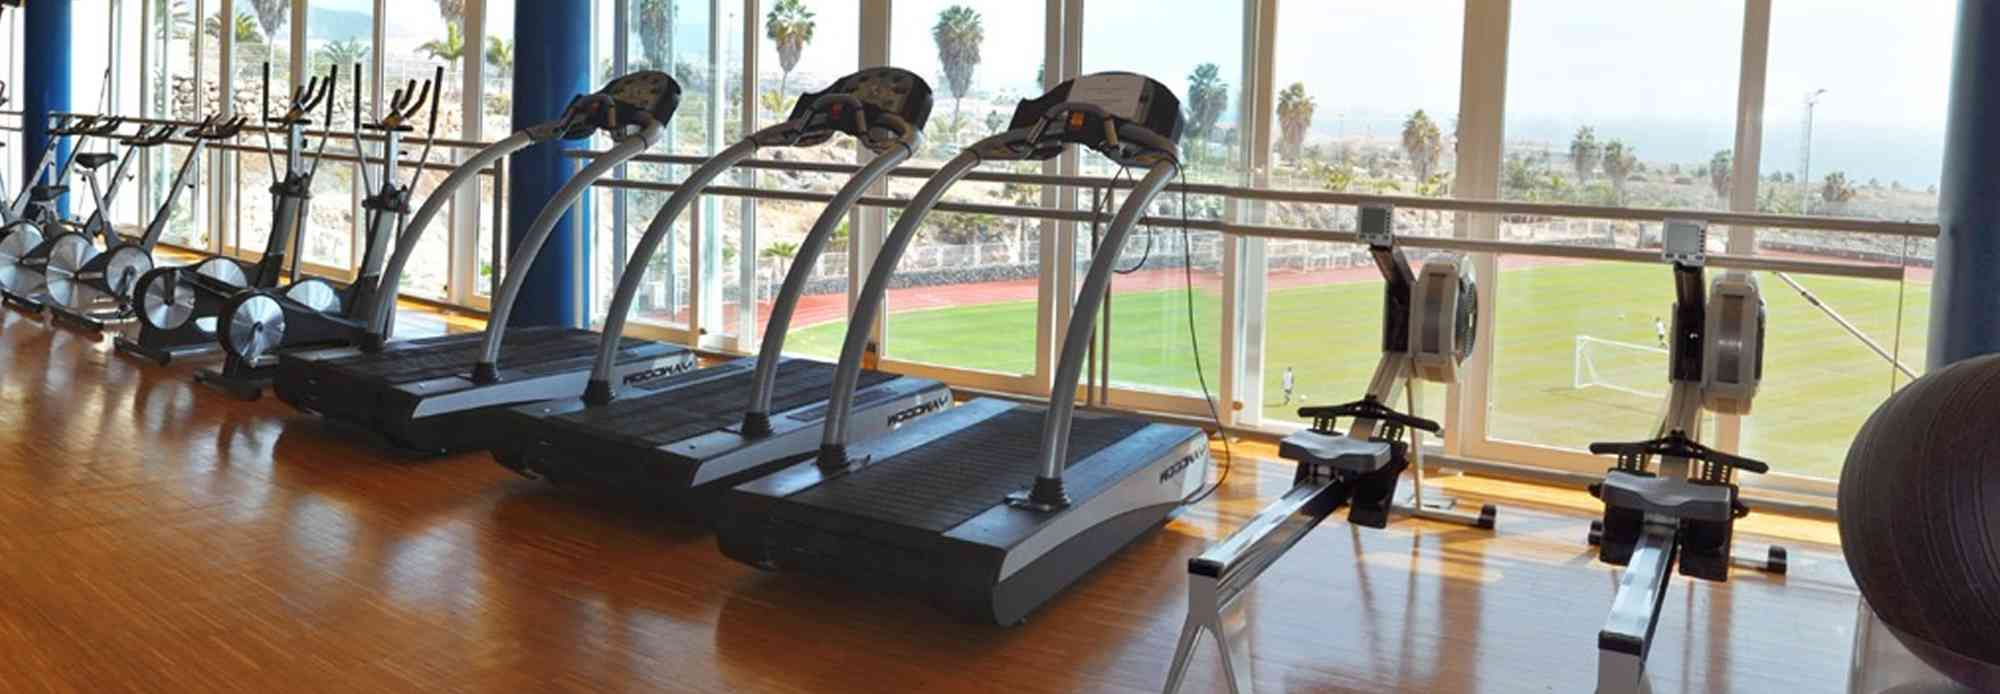 The indoor gym is located in the main building of T3 and has a large training area with the latest equipment from TechnoGym® and Keiser®, alongside two rooms for group exercises.